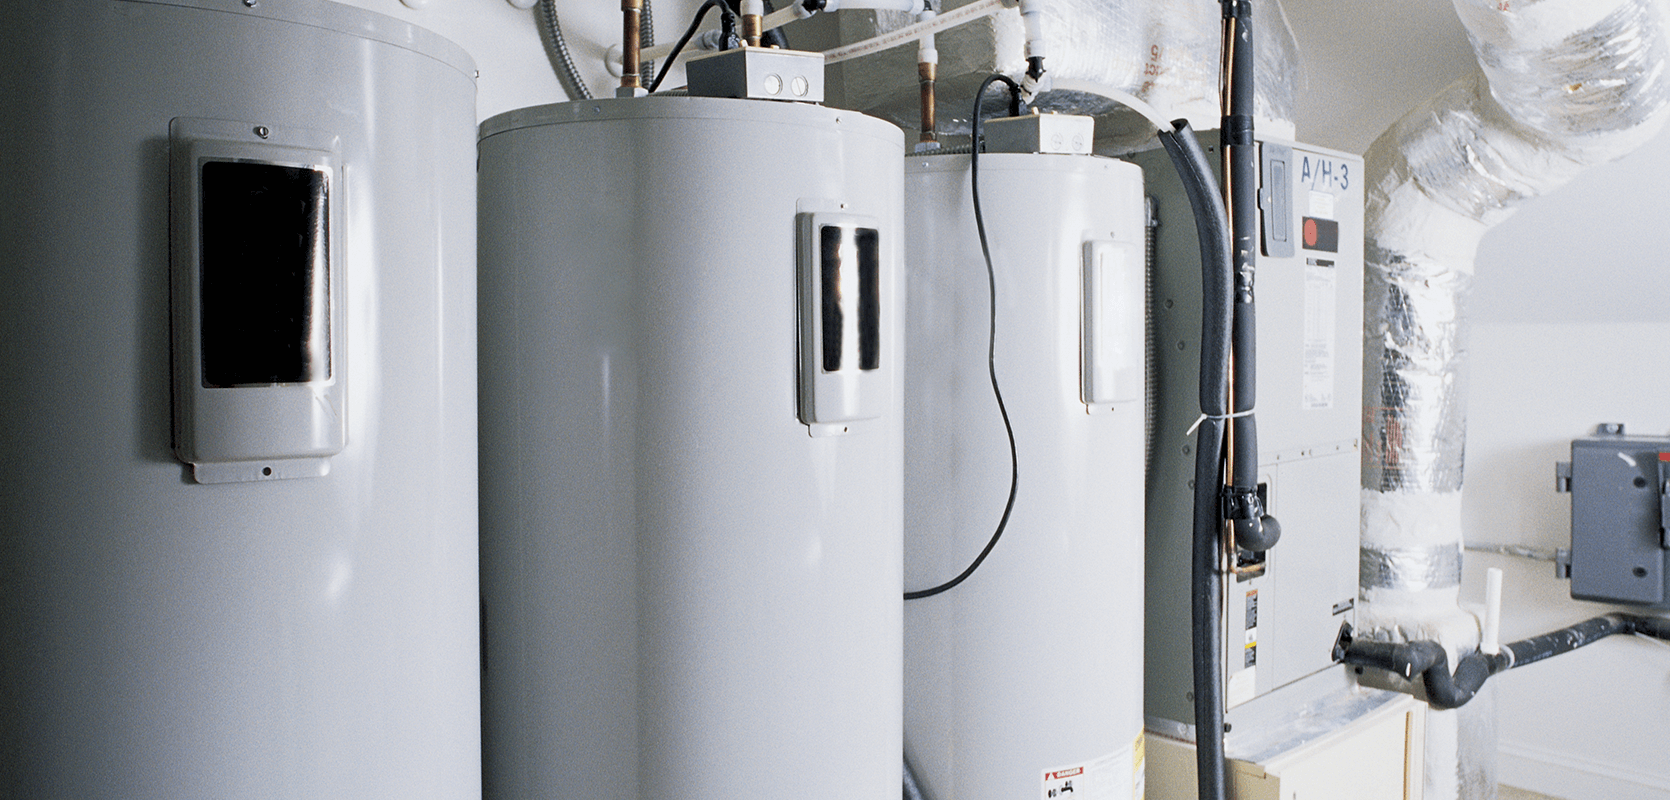 boilers-and-heating-systems-image